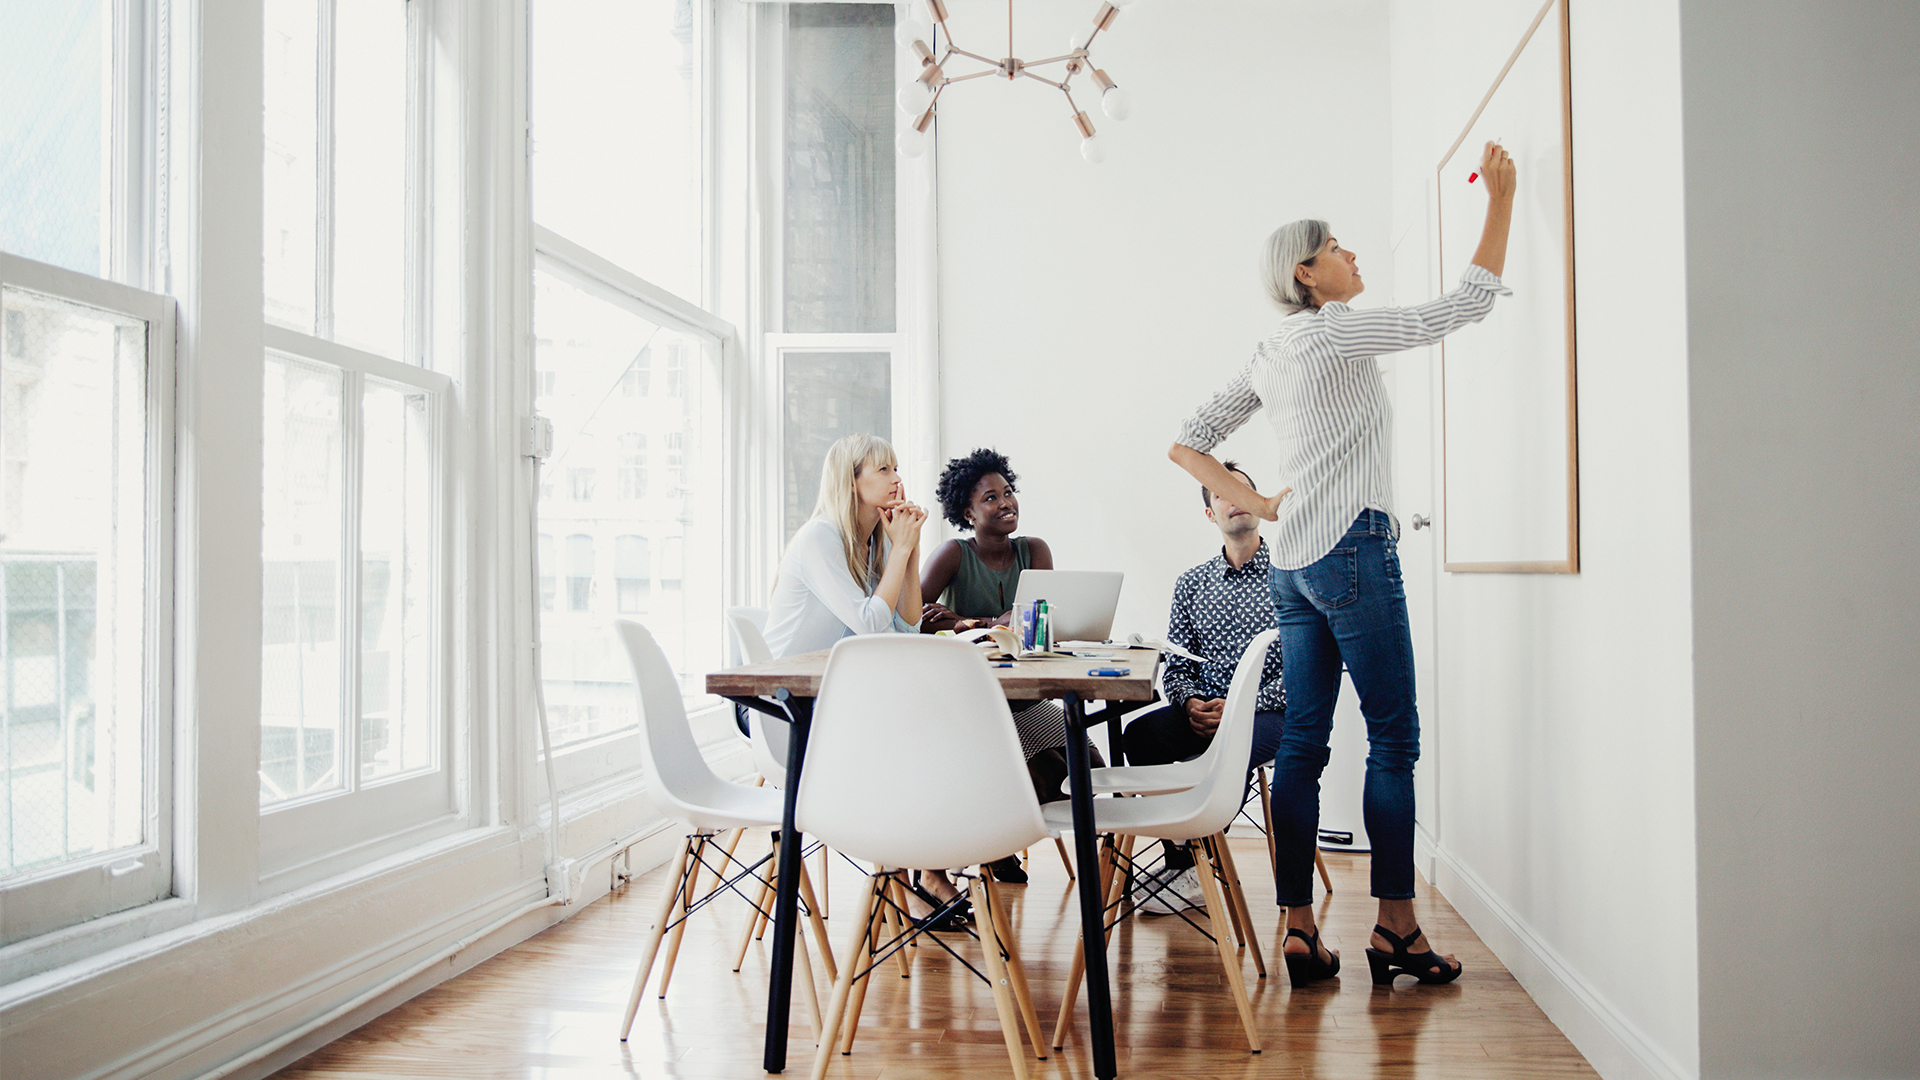 A woman stands in front of a whiteboard while three people watch in a conference room—perhaps marketers reviewing data.